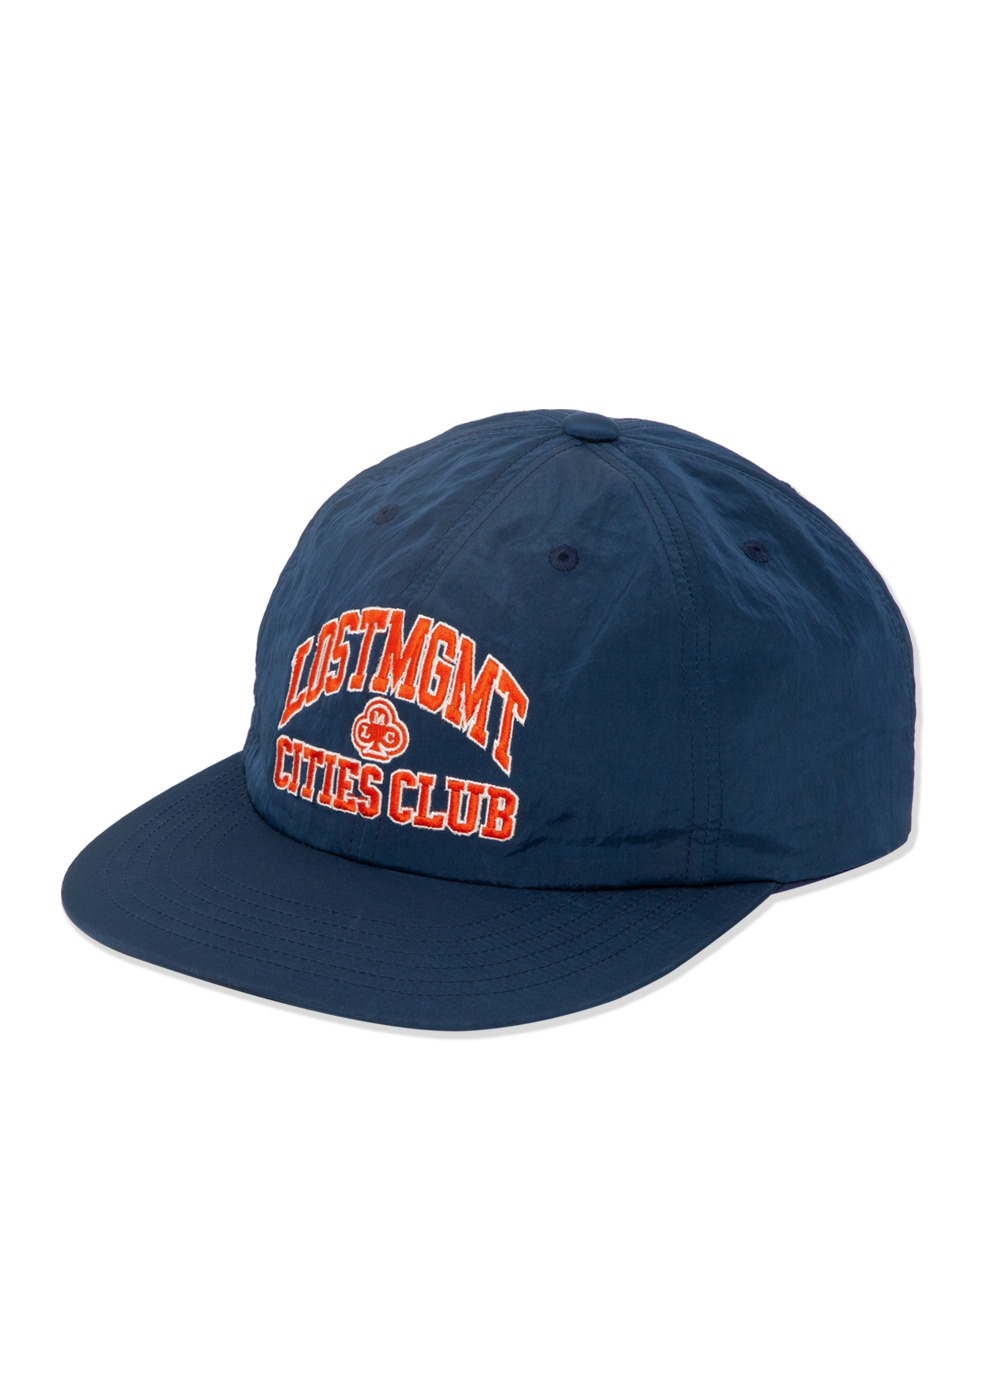 LMC NYLON CLUB ATHLETIC FLAT BILL CAP navy